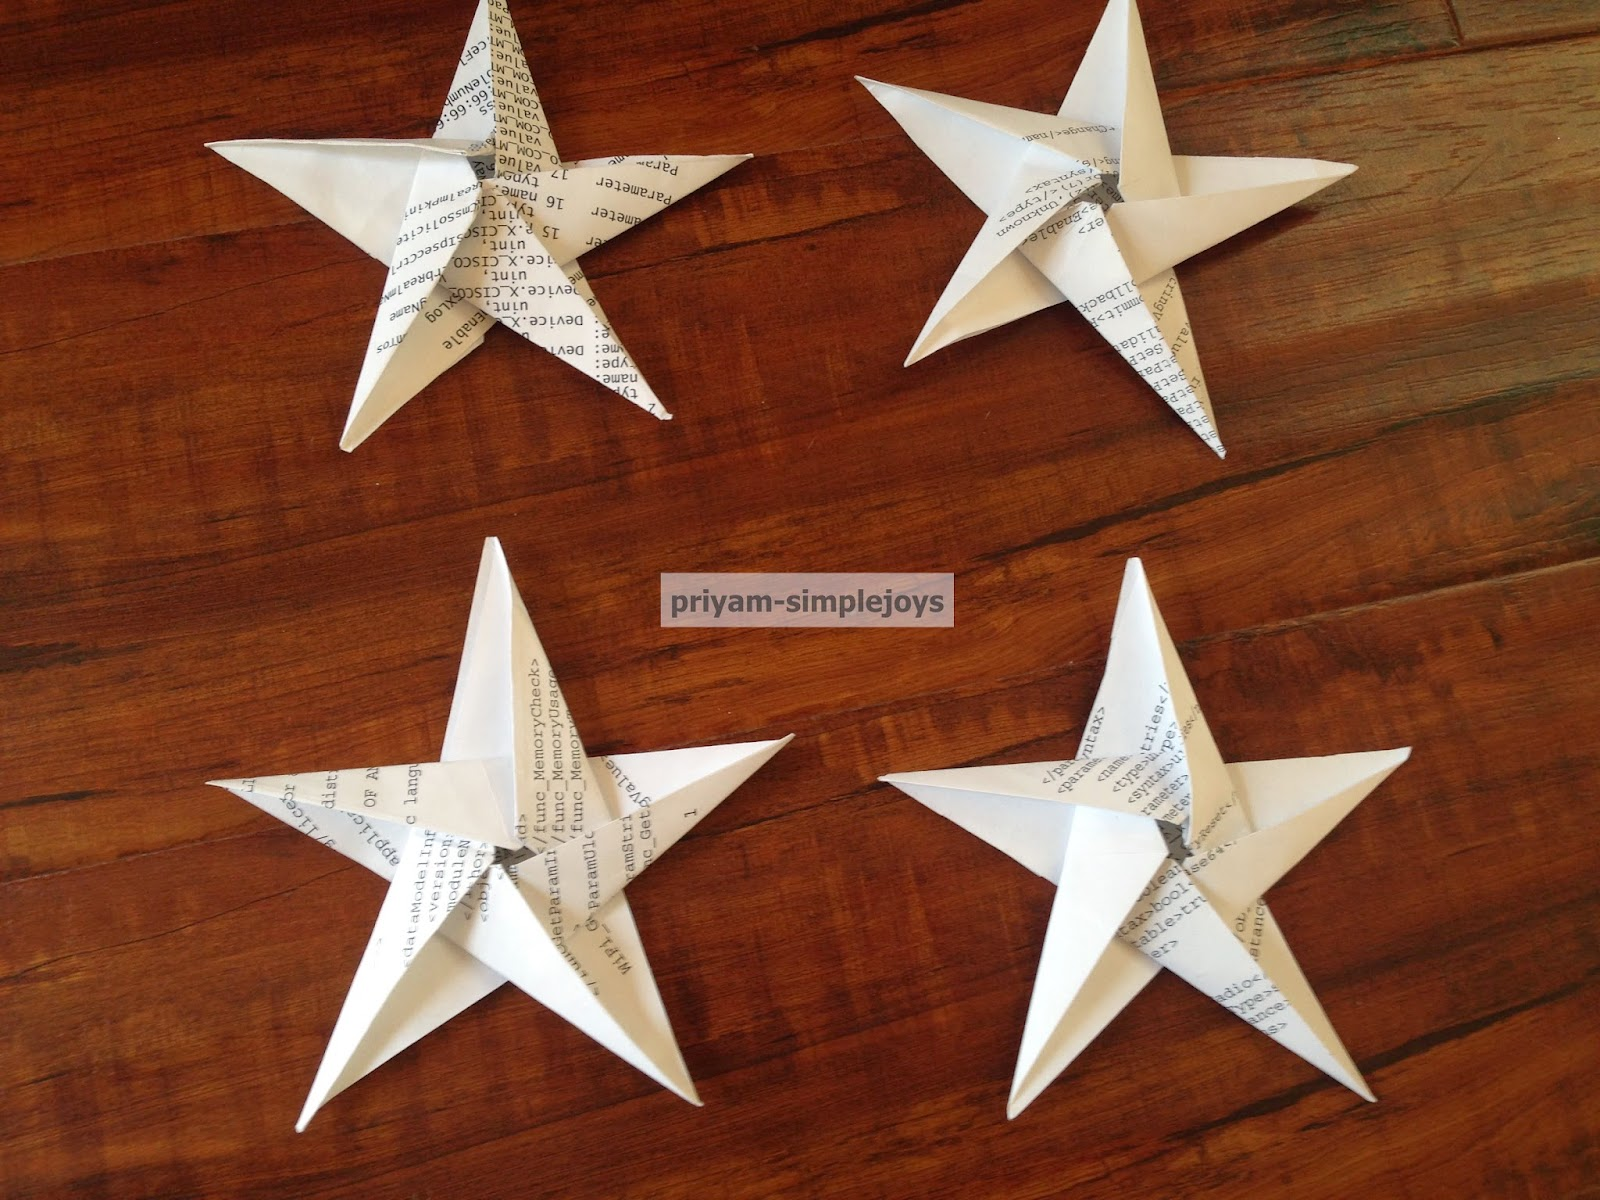 Simplejoys 8 Point Origami Star